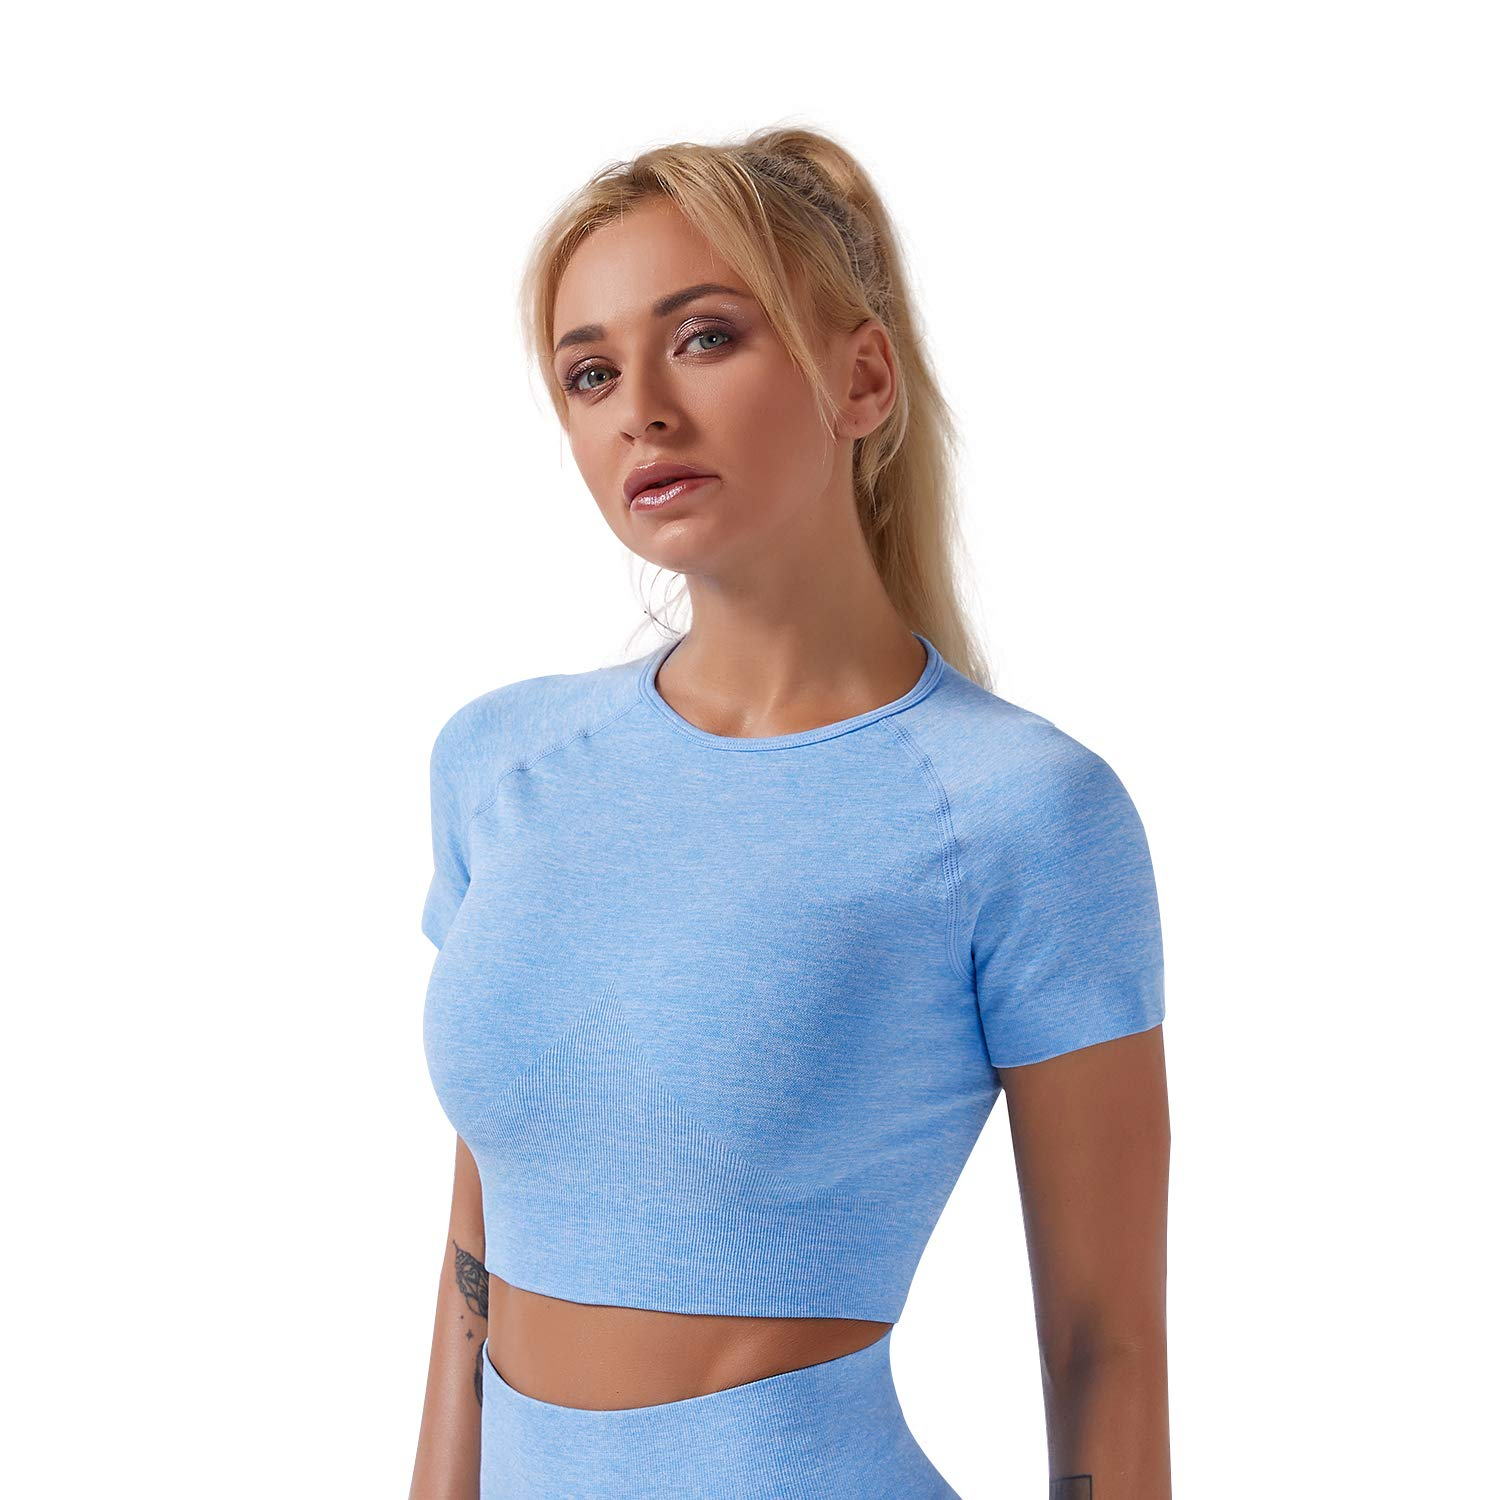 Women's Seamless Solid Color Yoga Stretch Tight Crop Top Sports Short Sleeve Top